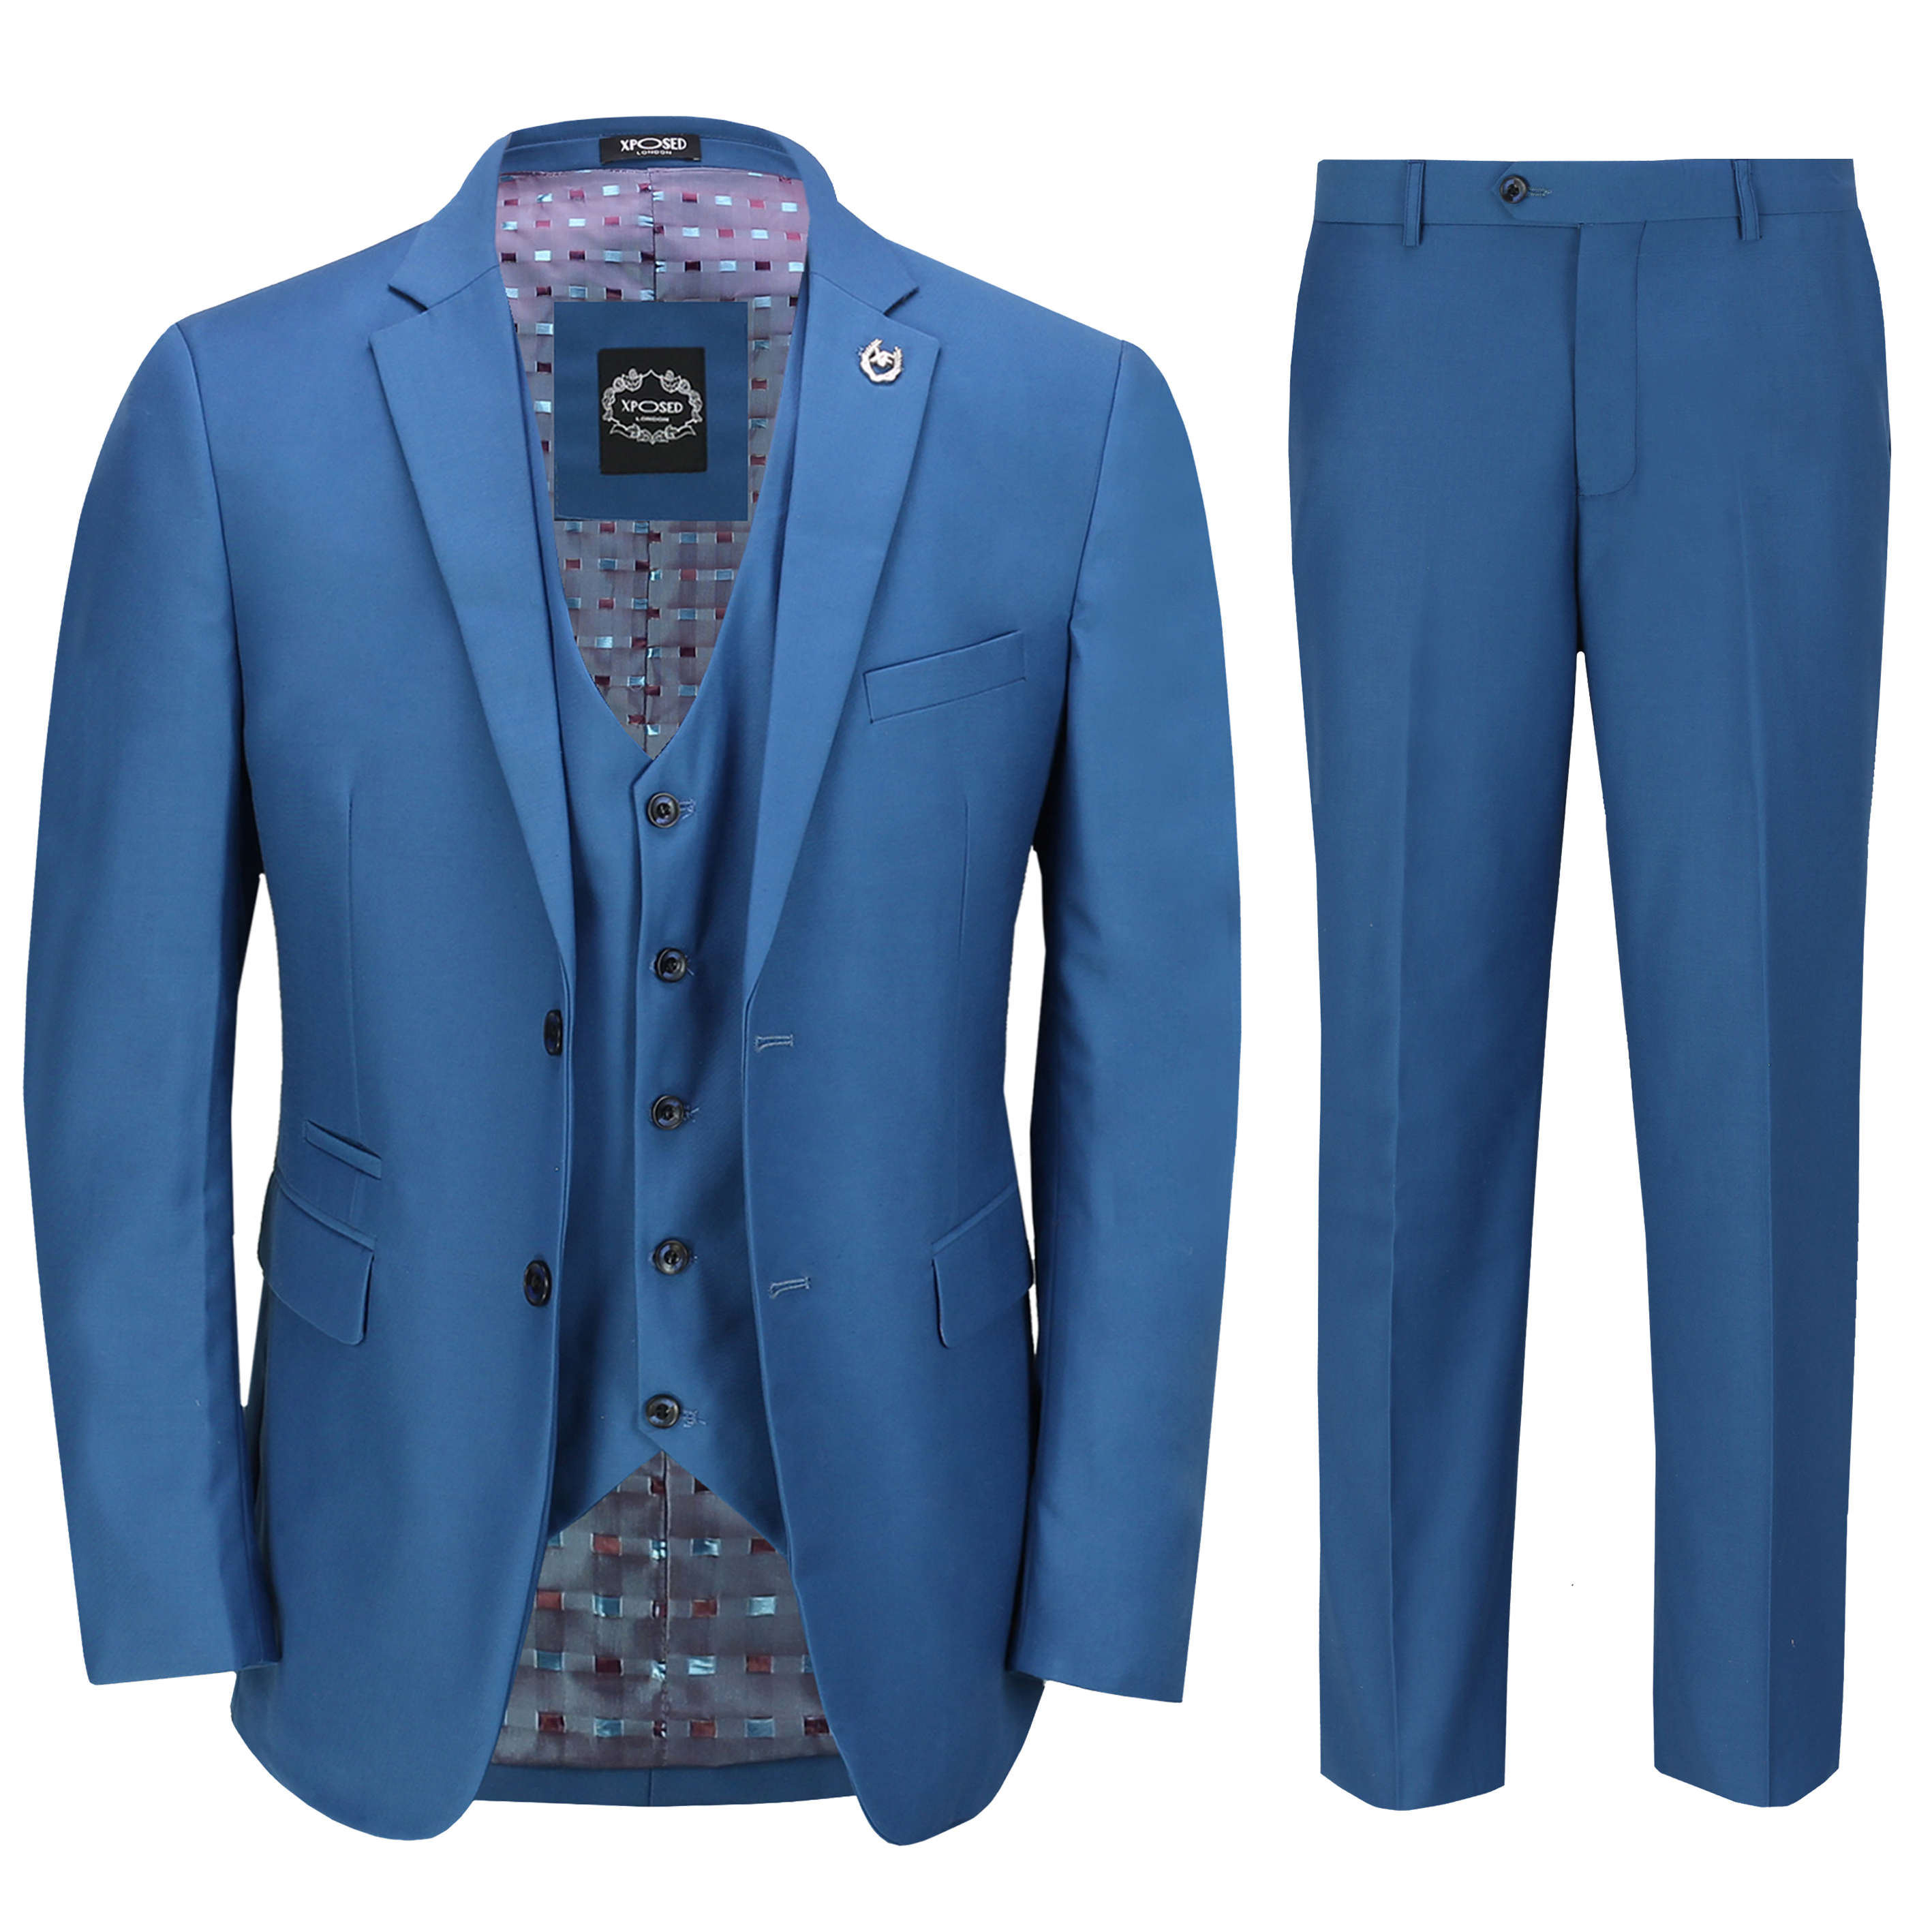 Mens 3 Piece Business Suit Blue Smart Casual Classic Tailored Fit Office Formal